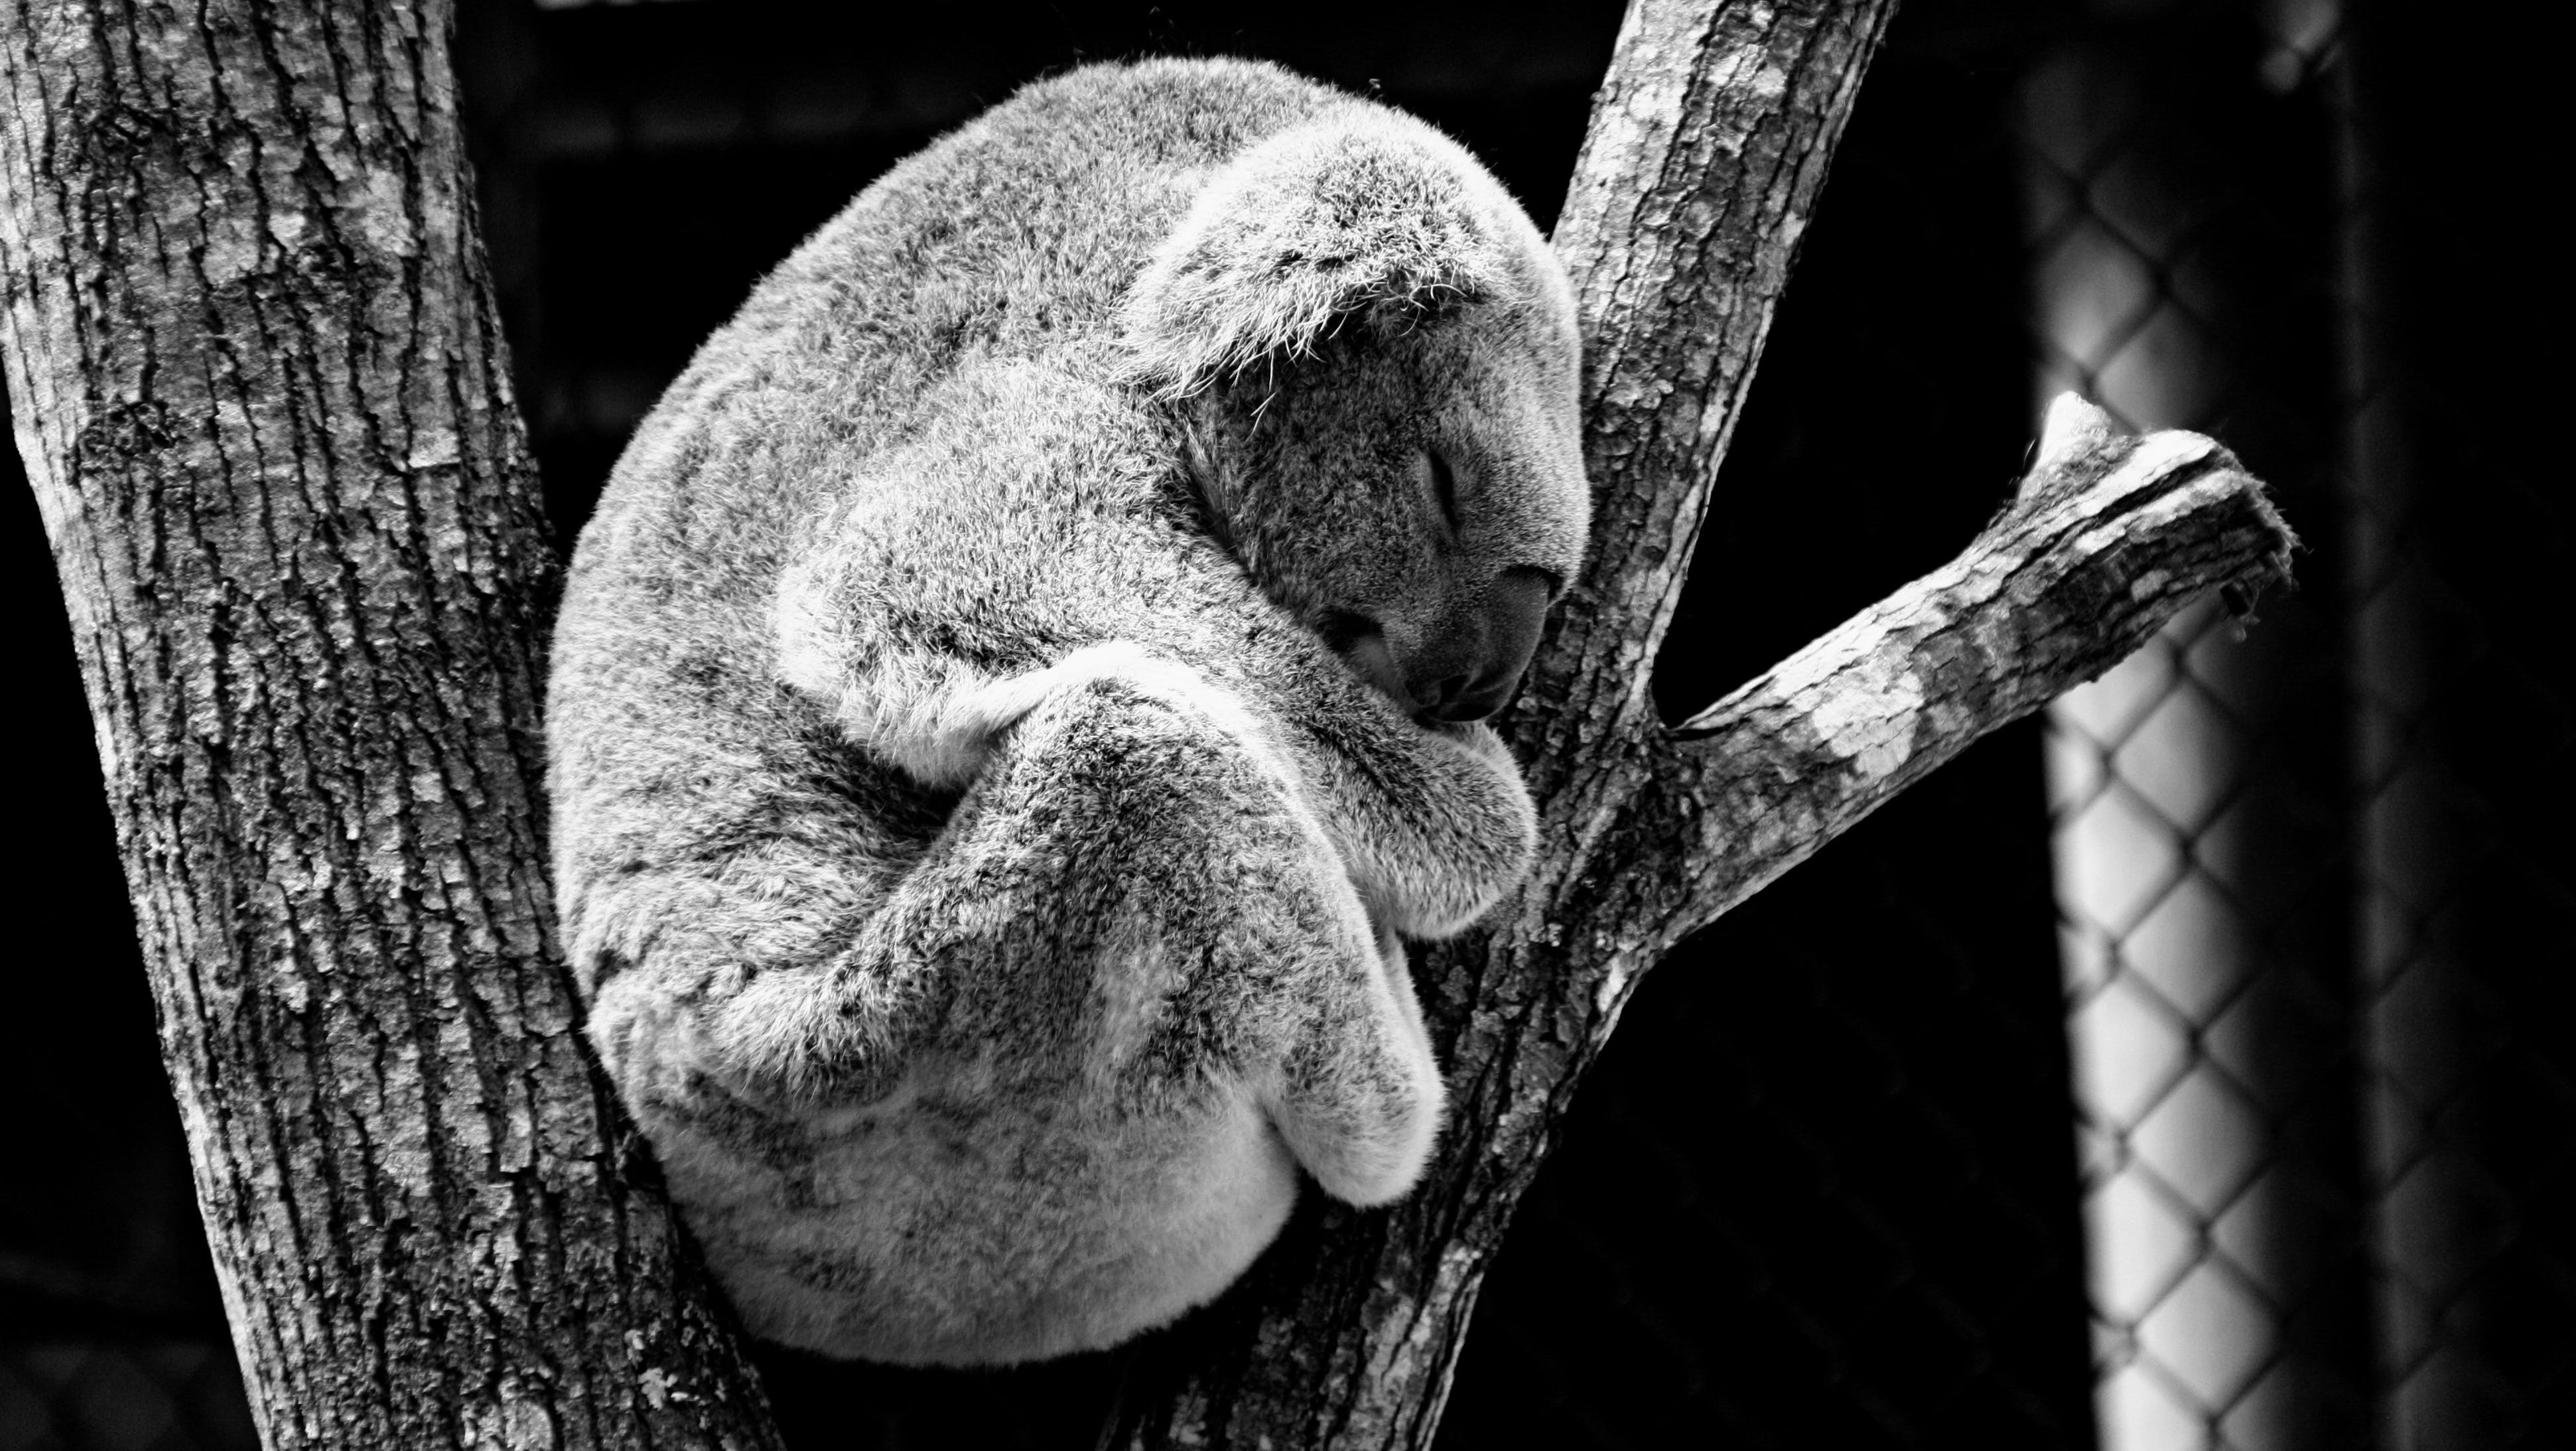 Greyscale Photography of Koala in Between Tree Trunks